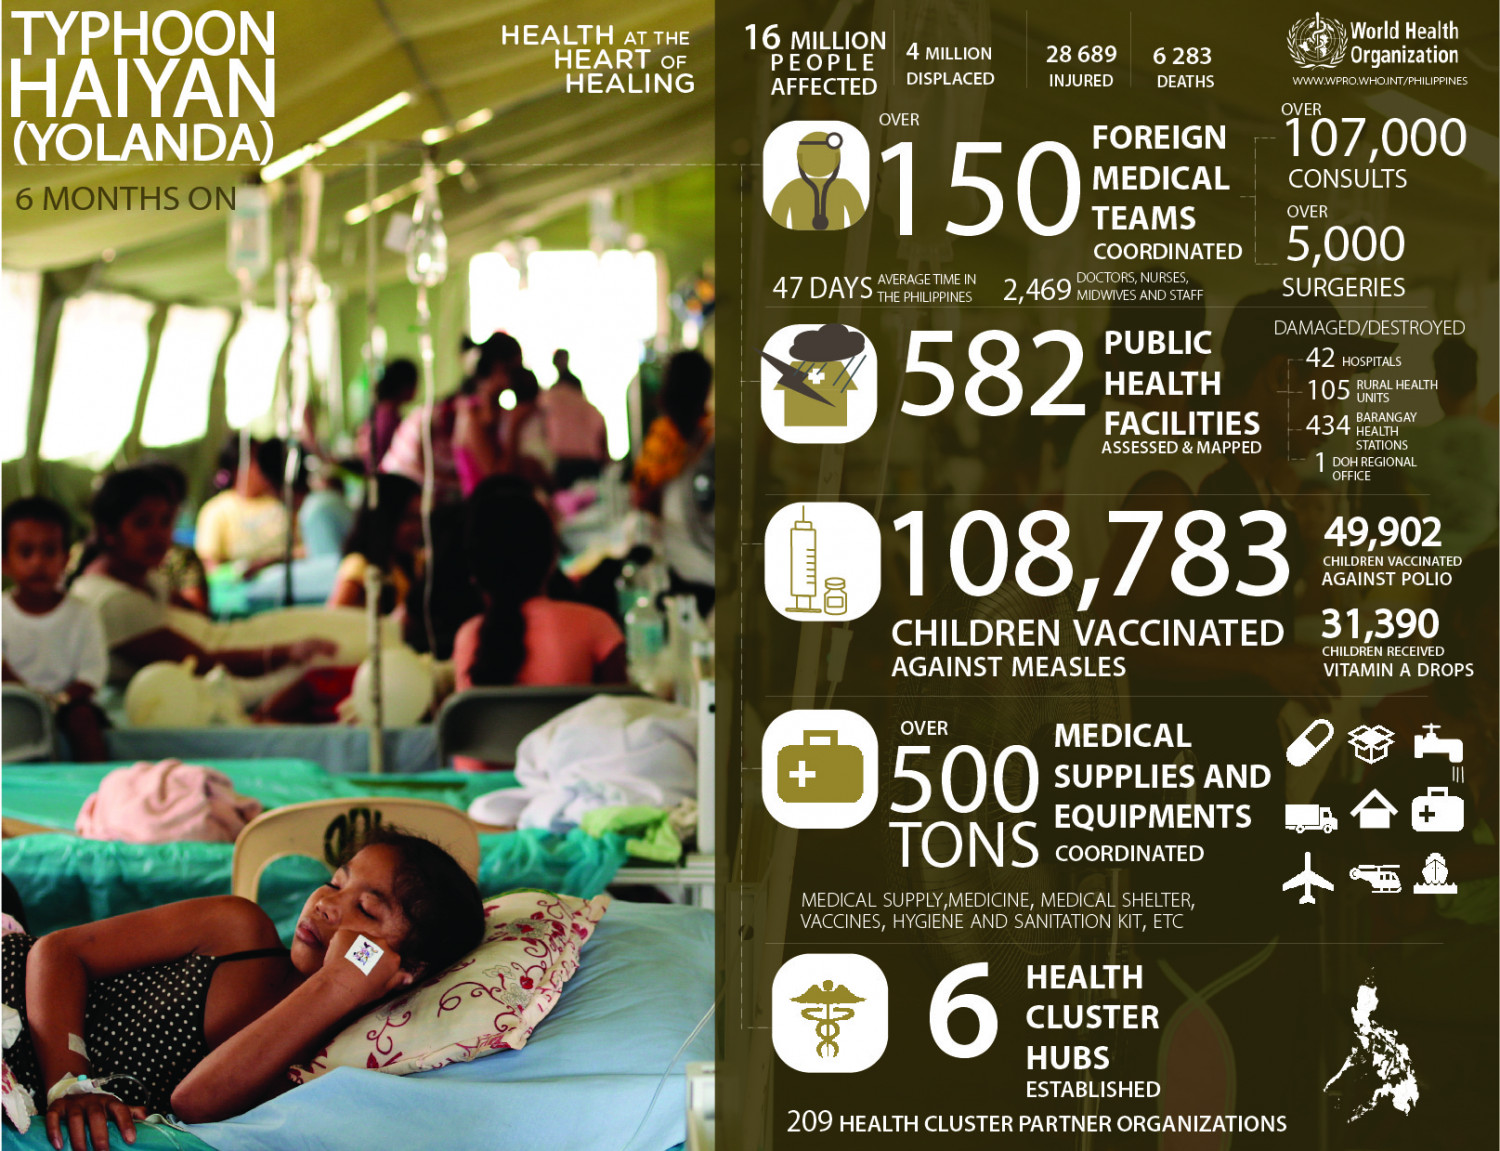 Health Response 6 months after Typhoon Haiyan (Yolanda) Infographic